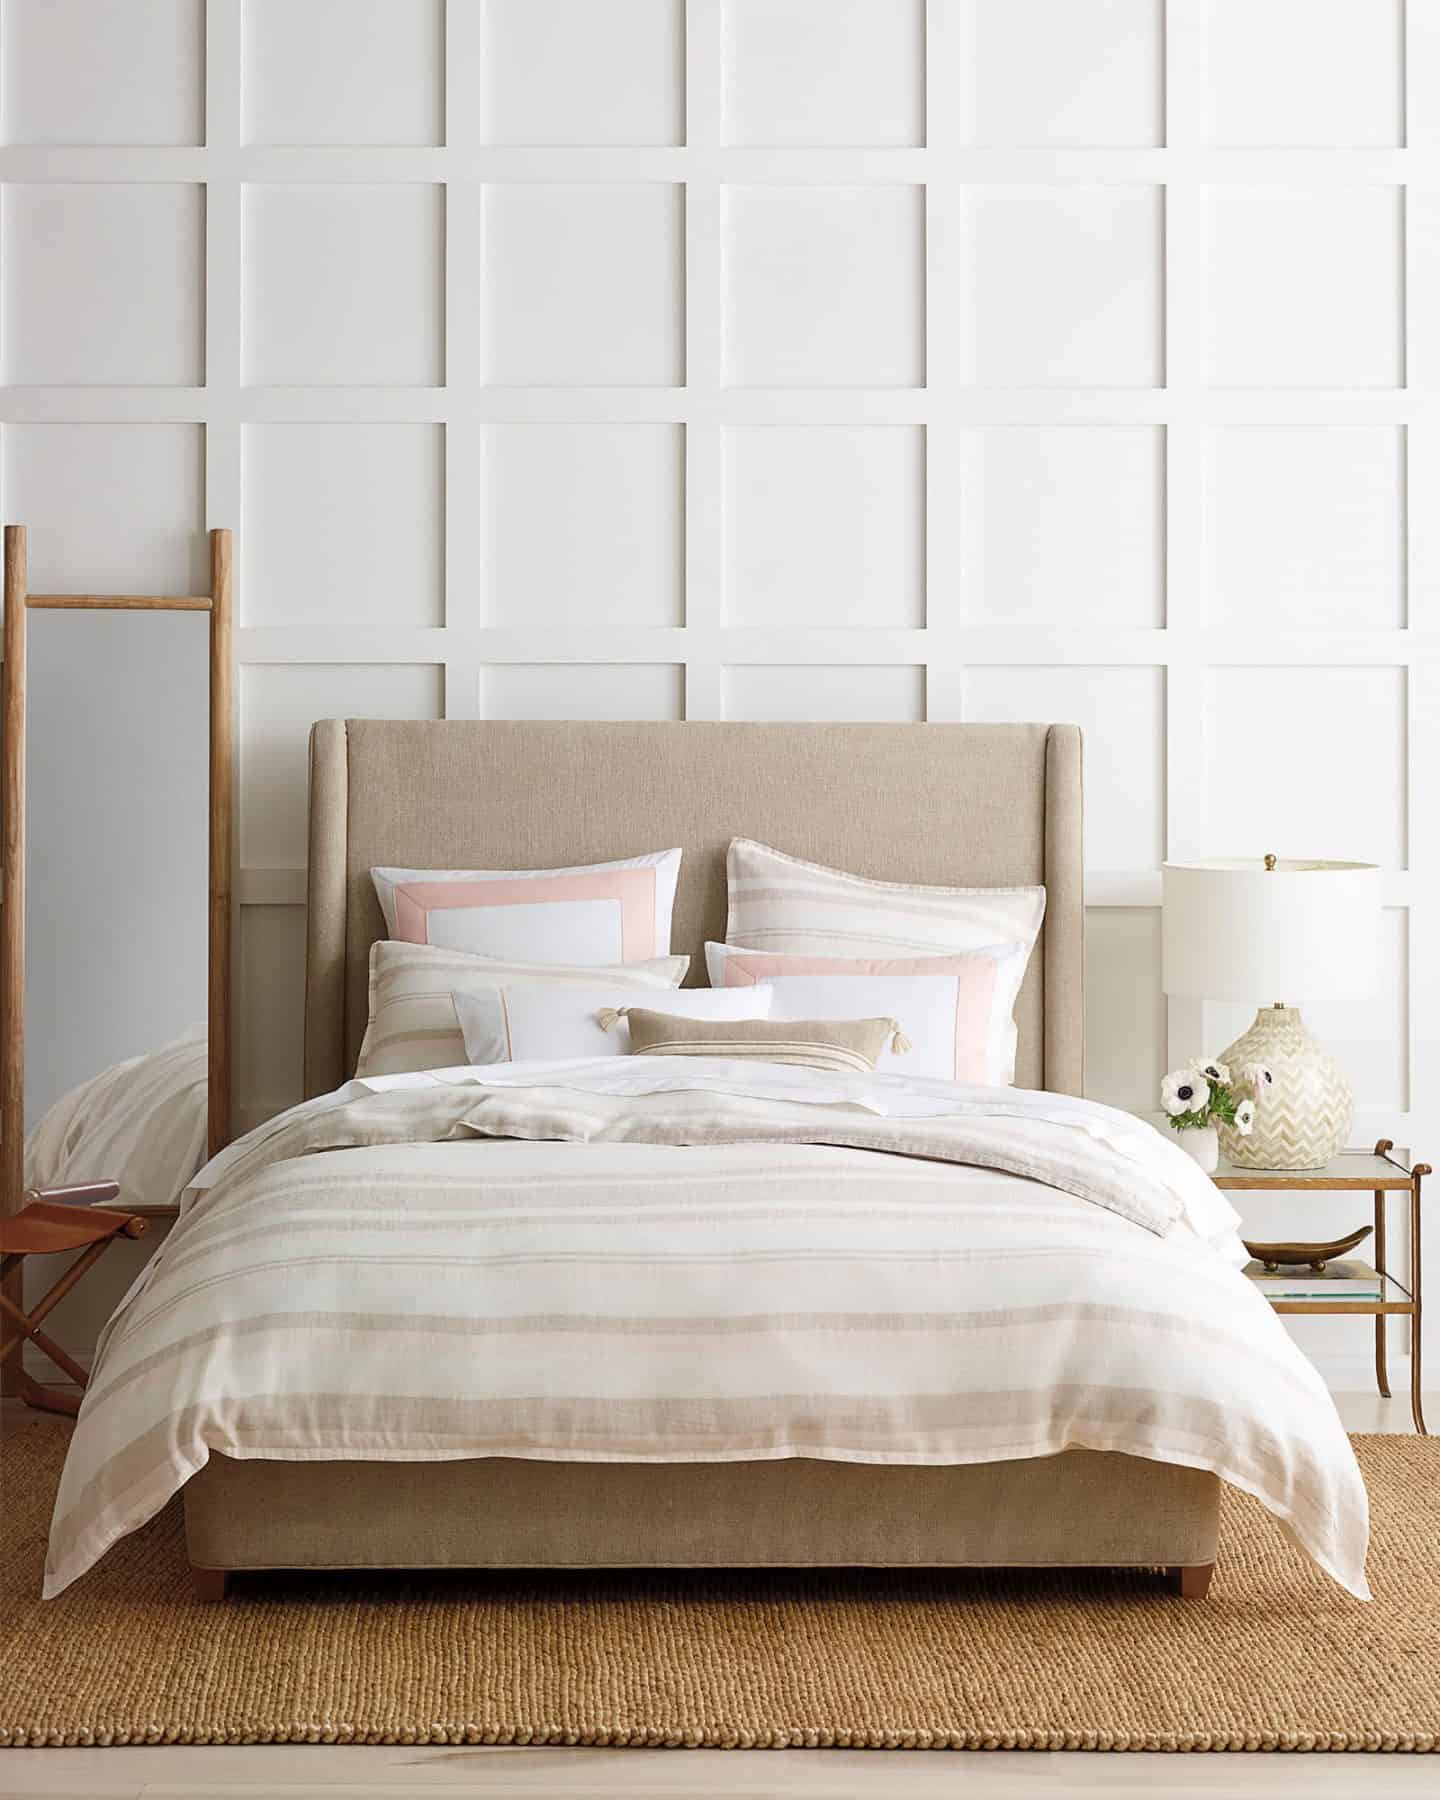 Serena and Lily White and Blush Pink Duvet